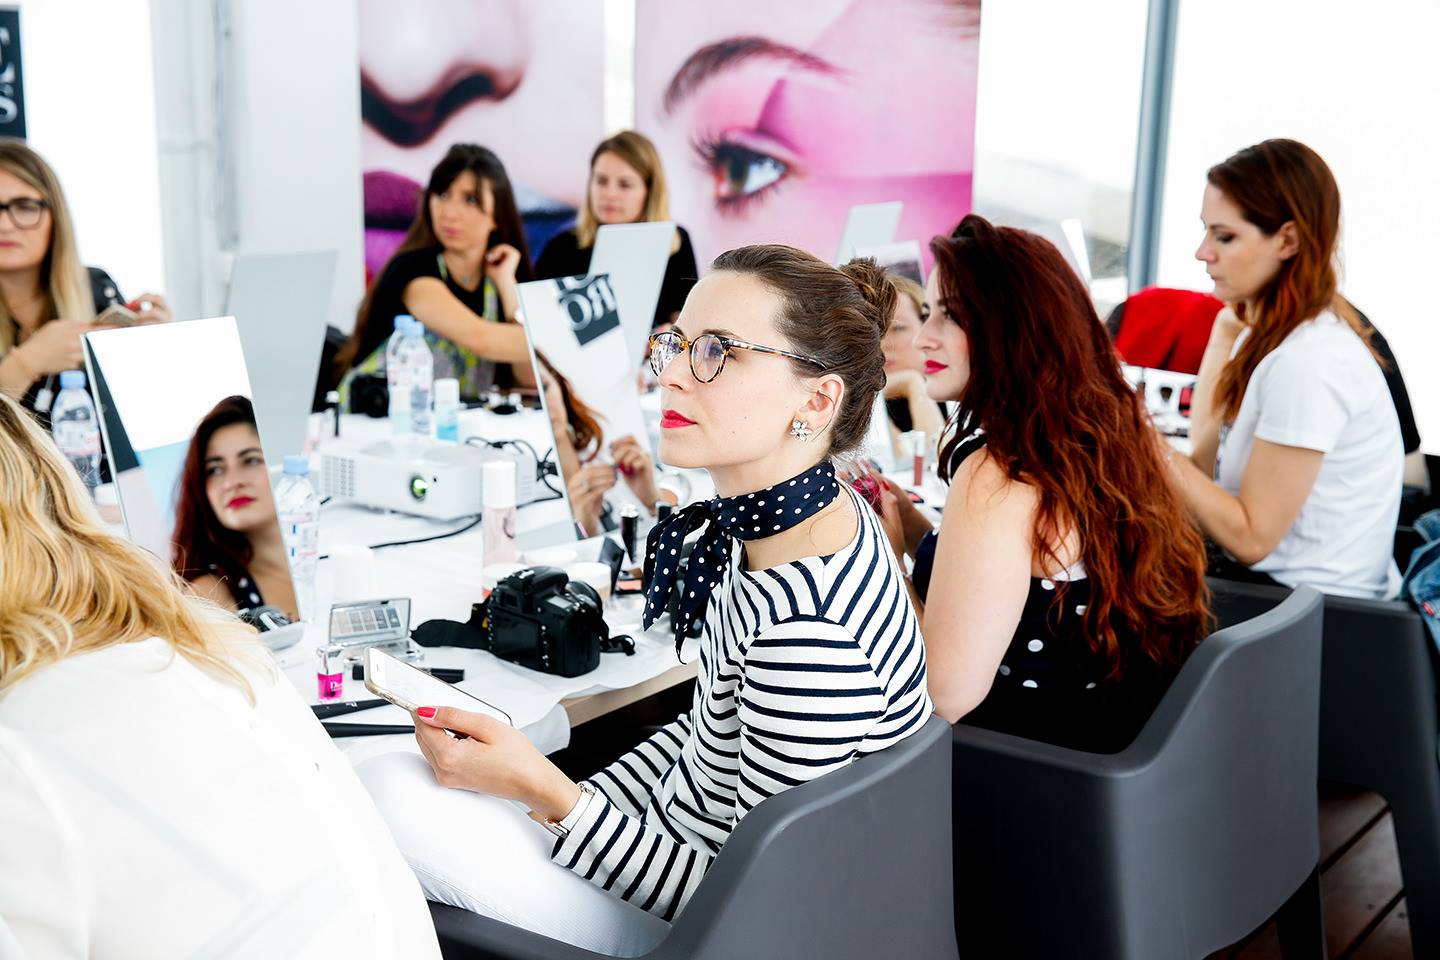 Blog-Mode-And-The-City-Lifestyle-Dior-California-Biarritz08